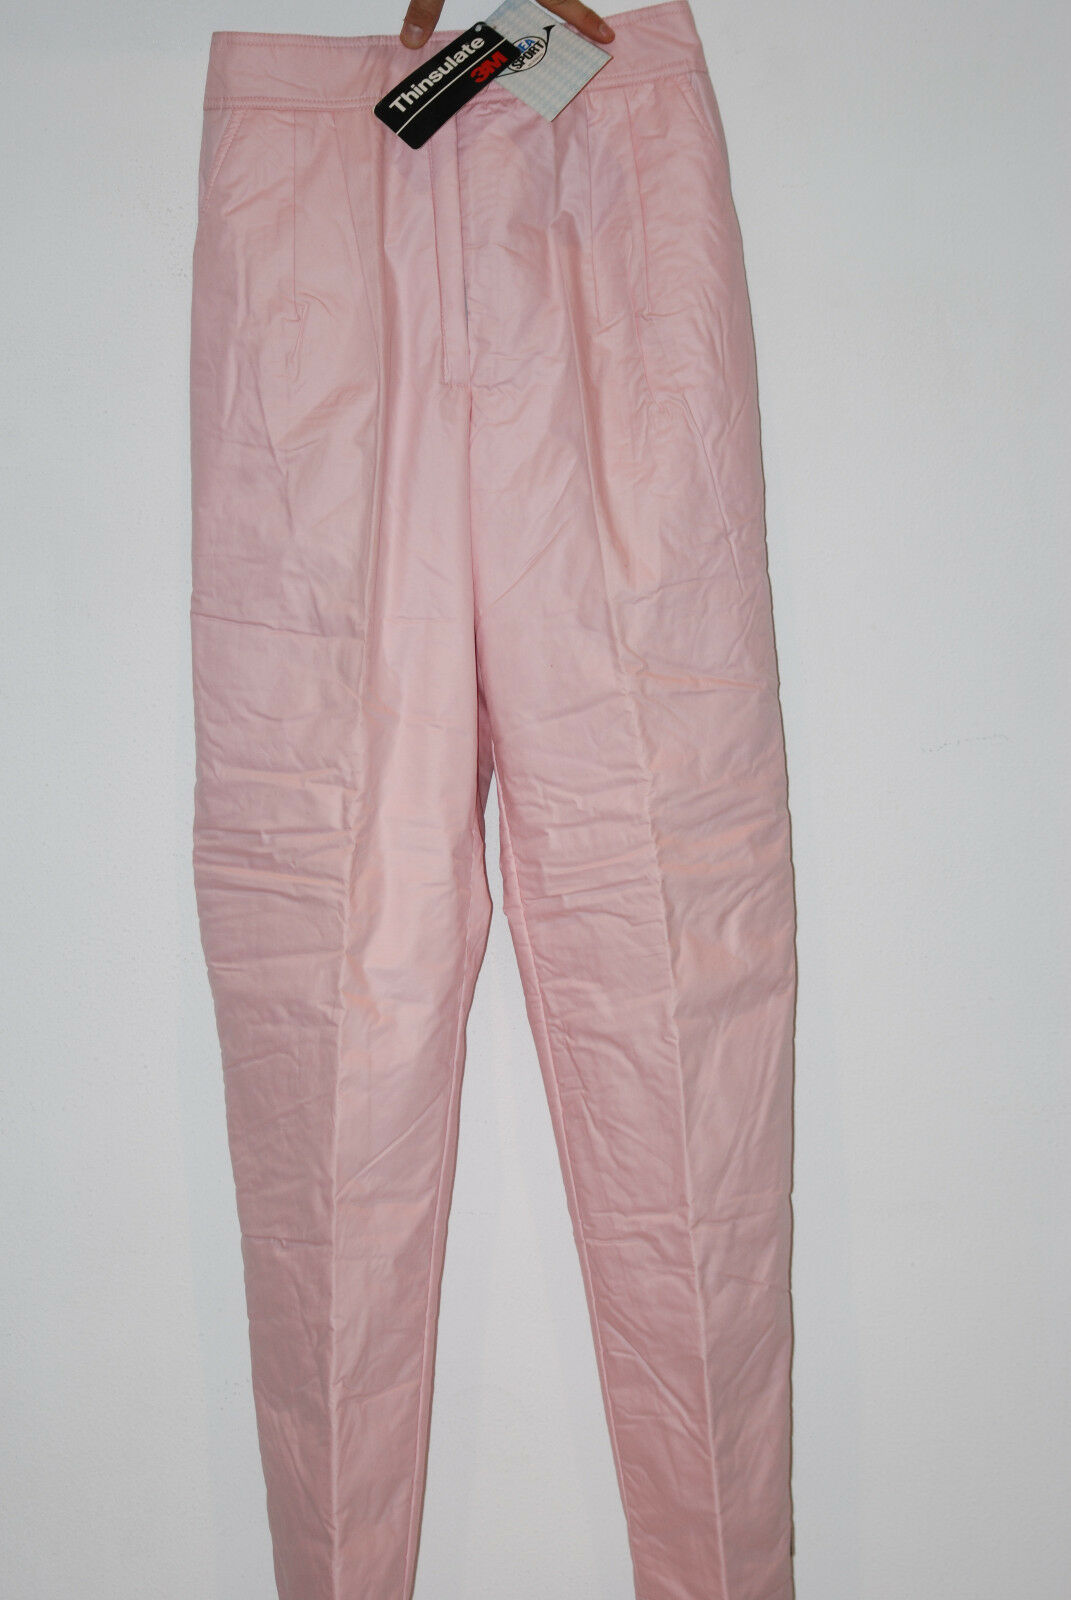 Snow vintage Linea Sport Milan ski Thermore trousers sci neve thinsulate 3M